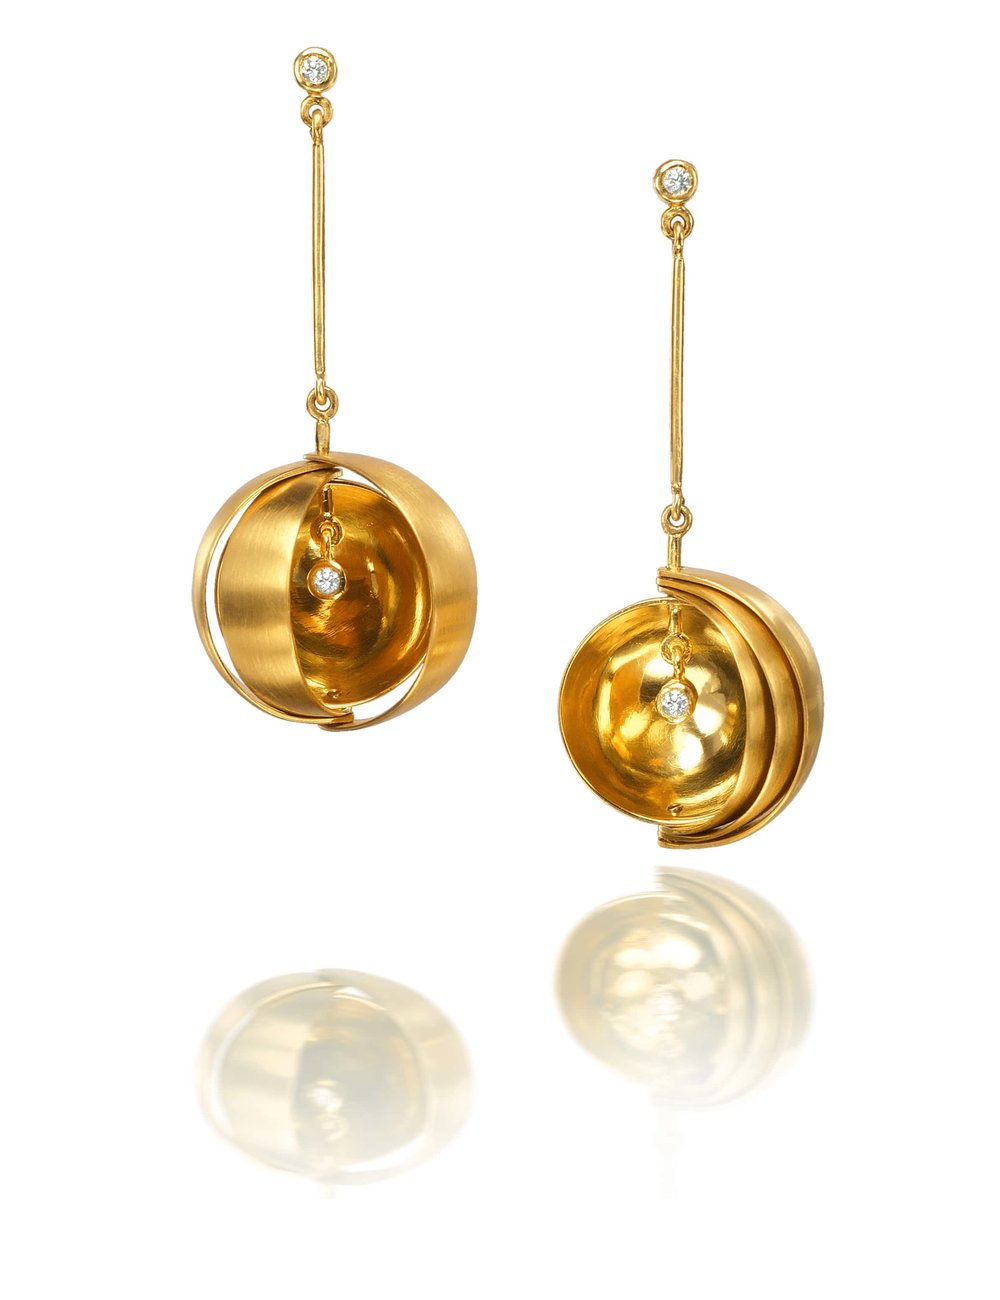 Rose Carvalho - Observatory Long  Earrrings -18K yellow gold and diamonds.jpg